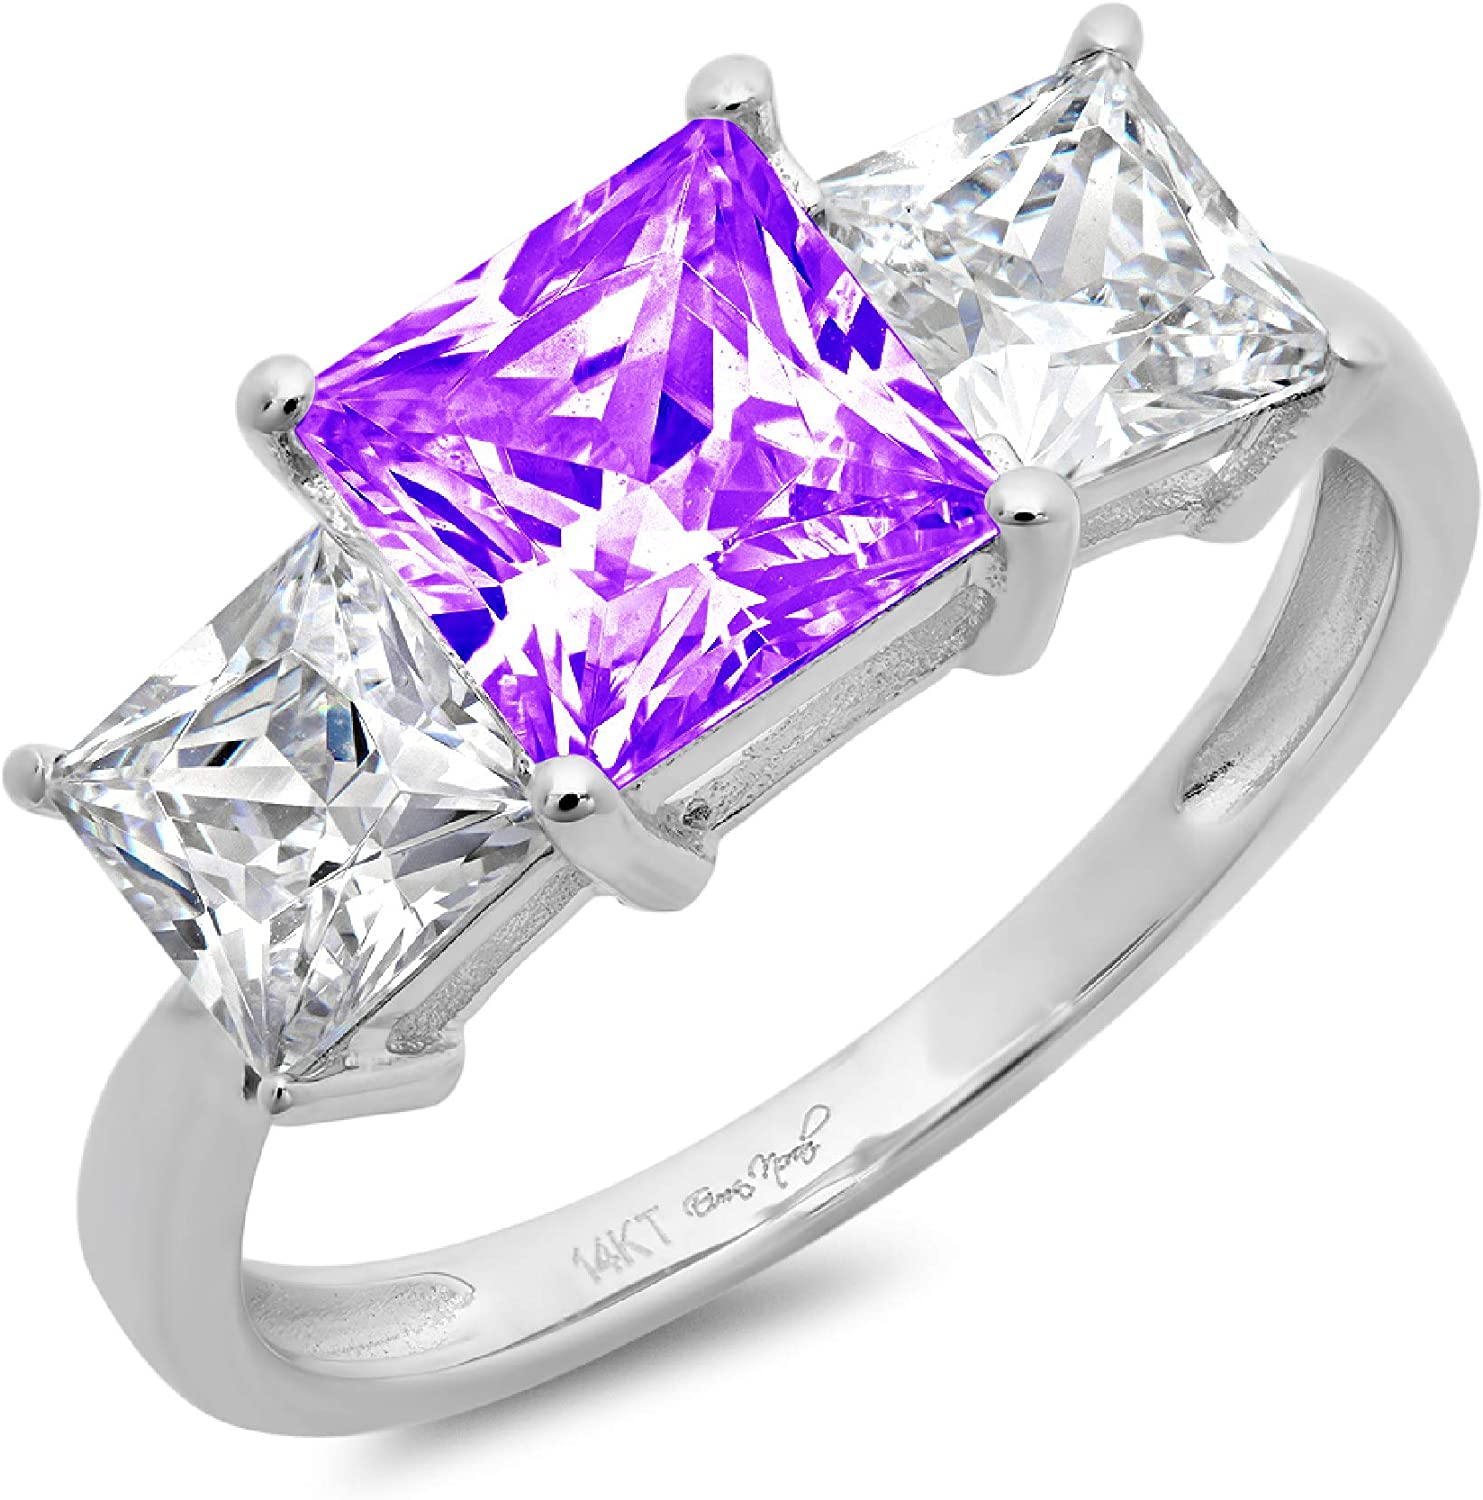 2.97ct Brilliant Princess Cut 3 Stone Solitaire with Accent Natural Purple Amethyst Gem Stone VVS1 Designer Modern Statement Ring Solid 14k White Gold Clara Pucci